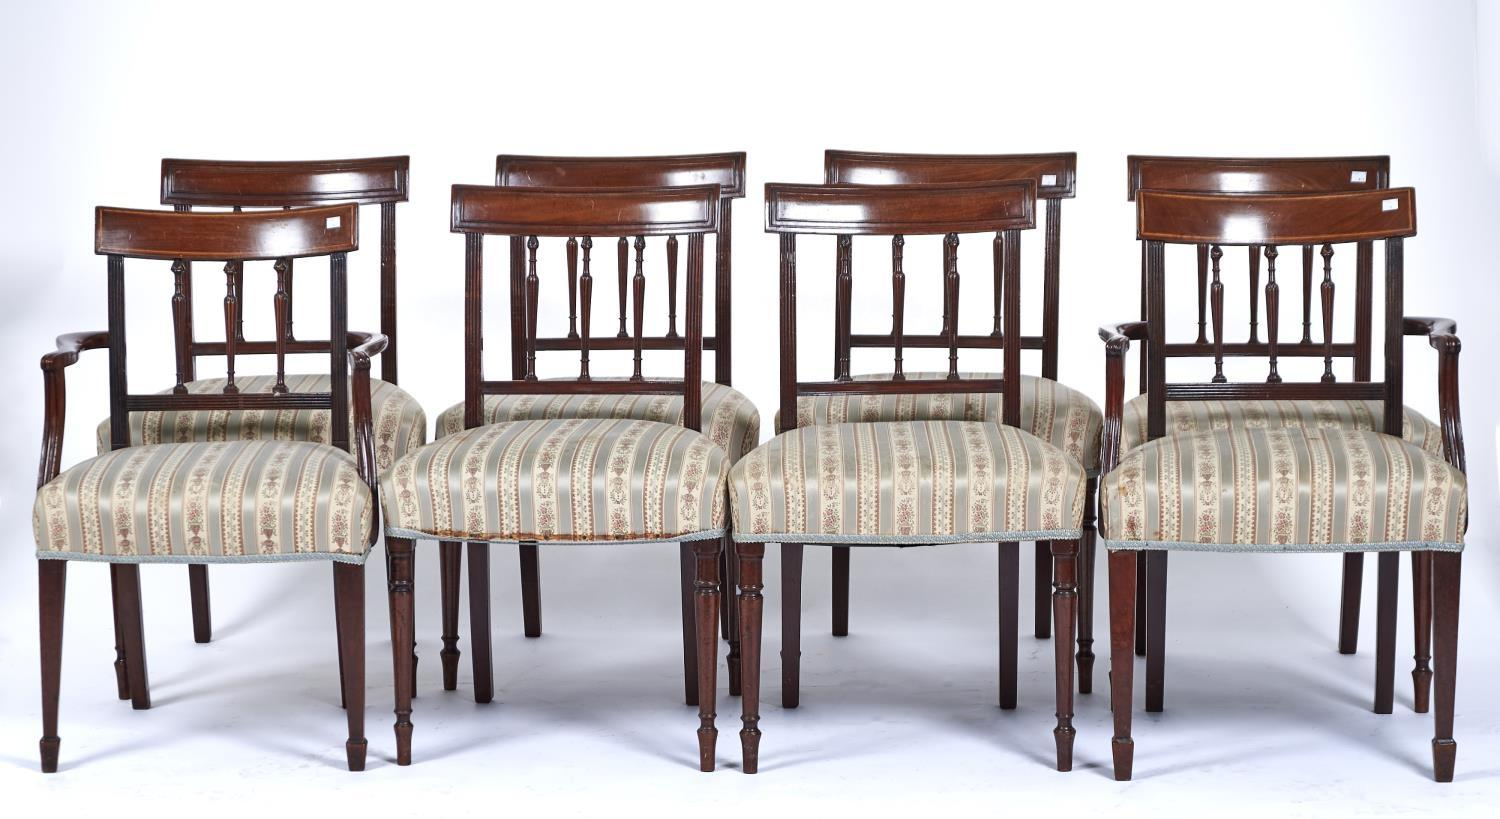 A SET OF SEVEN MAHOGANY SHERATON STYLE DINING CHAIRS, LATE 19TH / EARLY 20TH C, THE PANELLED CONCAVE